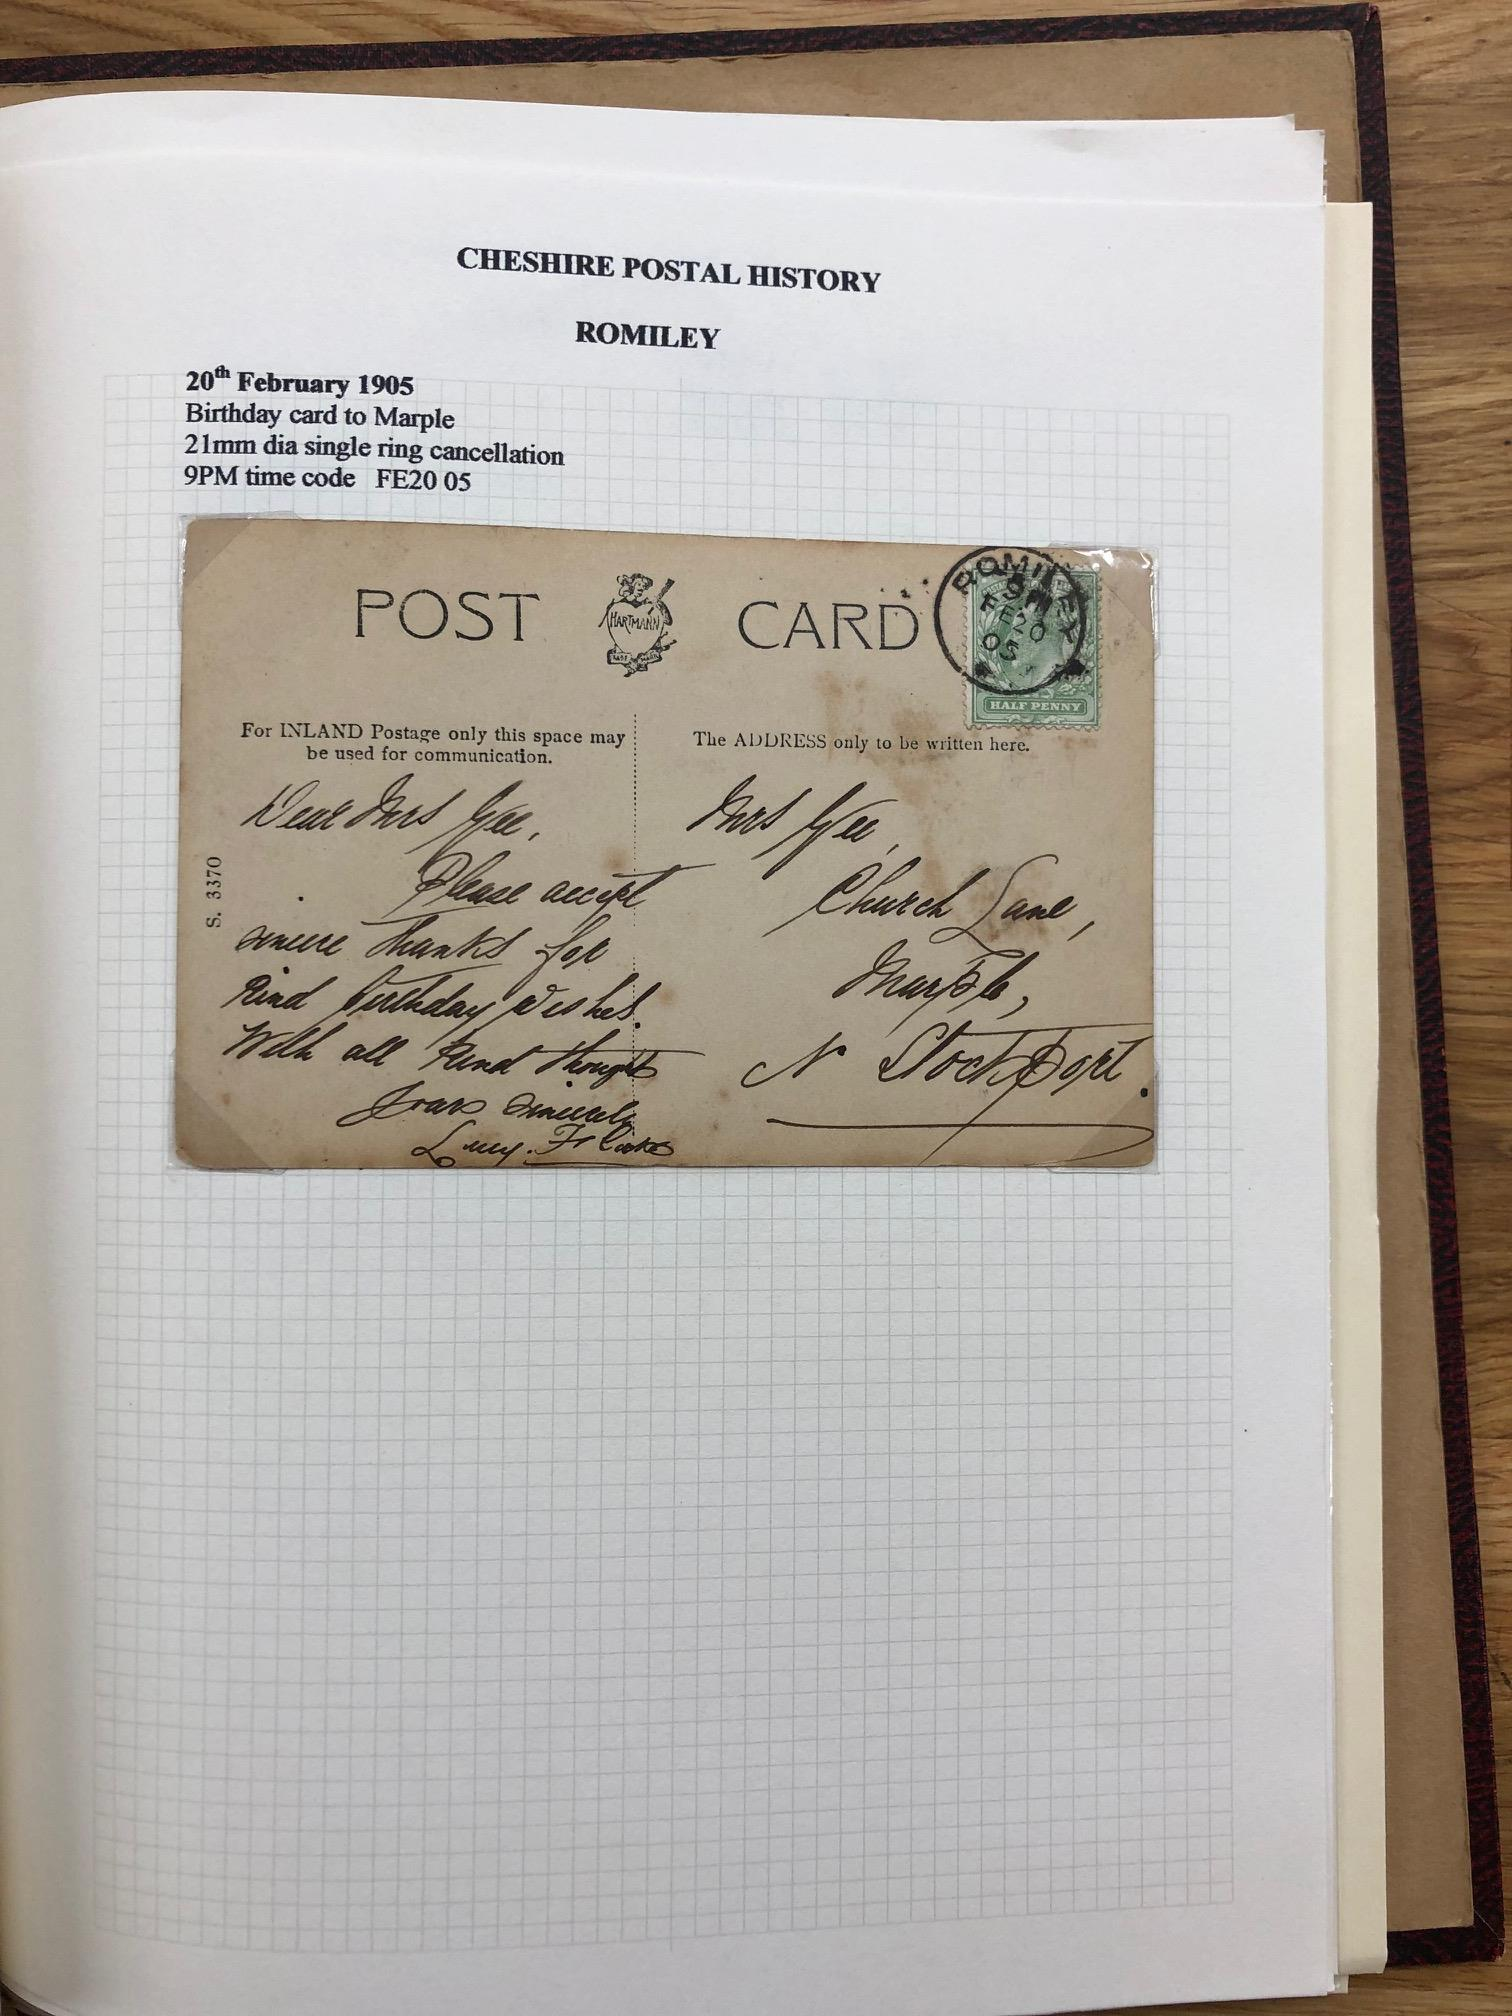 POSTAL HISTORY Cheshire collection of covers and PCs, KE7 to KGVI in album. Includes several KE7 - Image 2 of 2